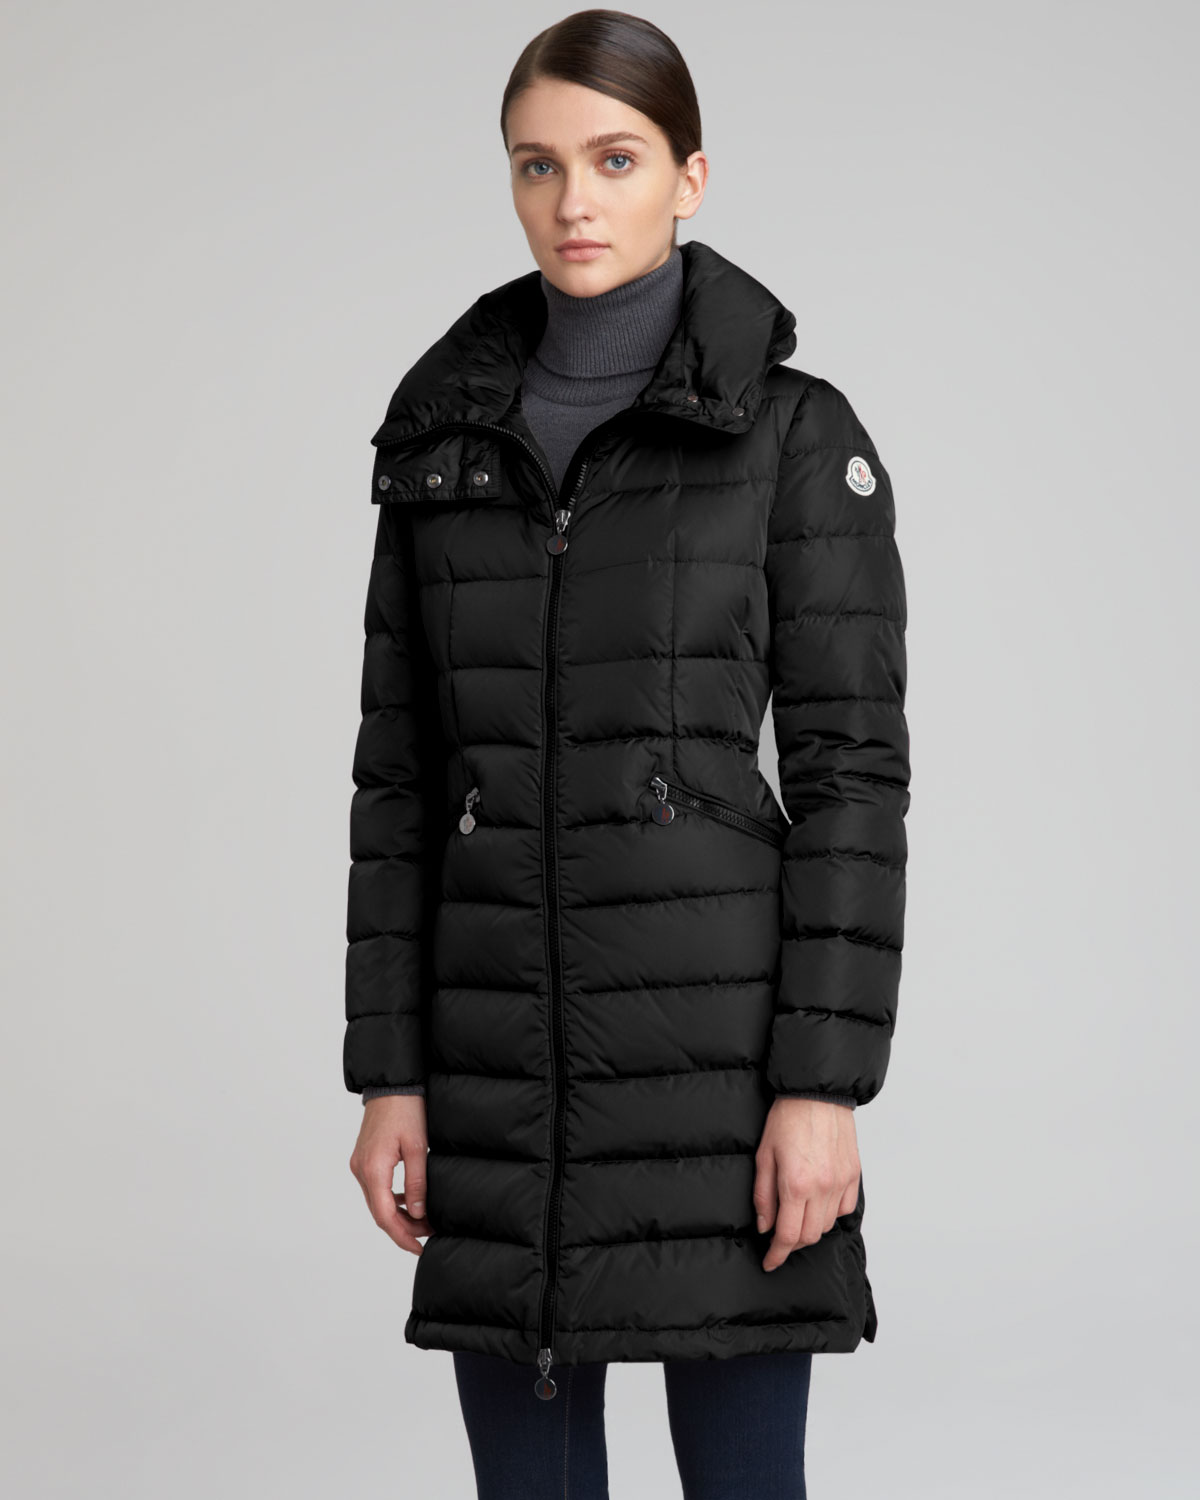 Find great deals on eBay for puffer long coat. Shop with confidence. Skip to main content. Madden Girl Women's Maxi Puffer Coat Size M Black Hooded Long Puffy Jacket See more like this. Women's SAVE THE DUCK Long Puffer Coat, Size 0, X-Small, Black Ladies Loose Puffer Long Coat Parka Jacket Hooded Oversized Winter Outerwear UK. Brand.